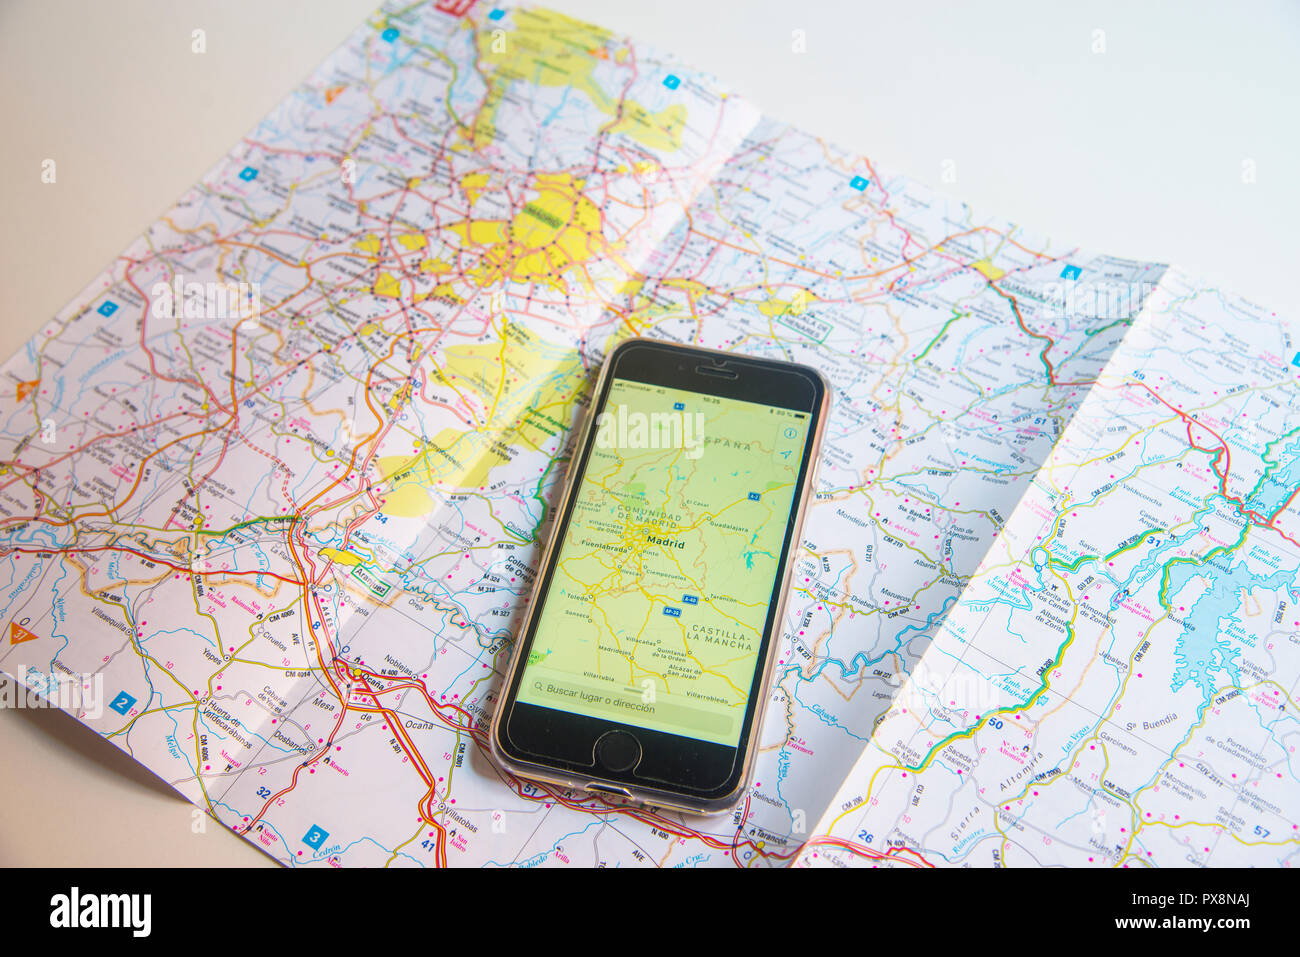 Road Map Of Spain.Road Map Of Spain Stock Photos Road Map Of Spain Stock Images Alamy